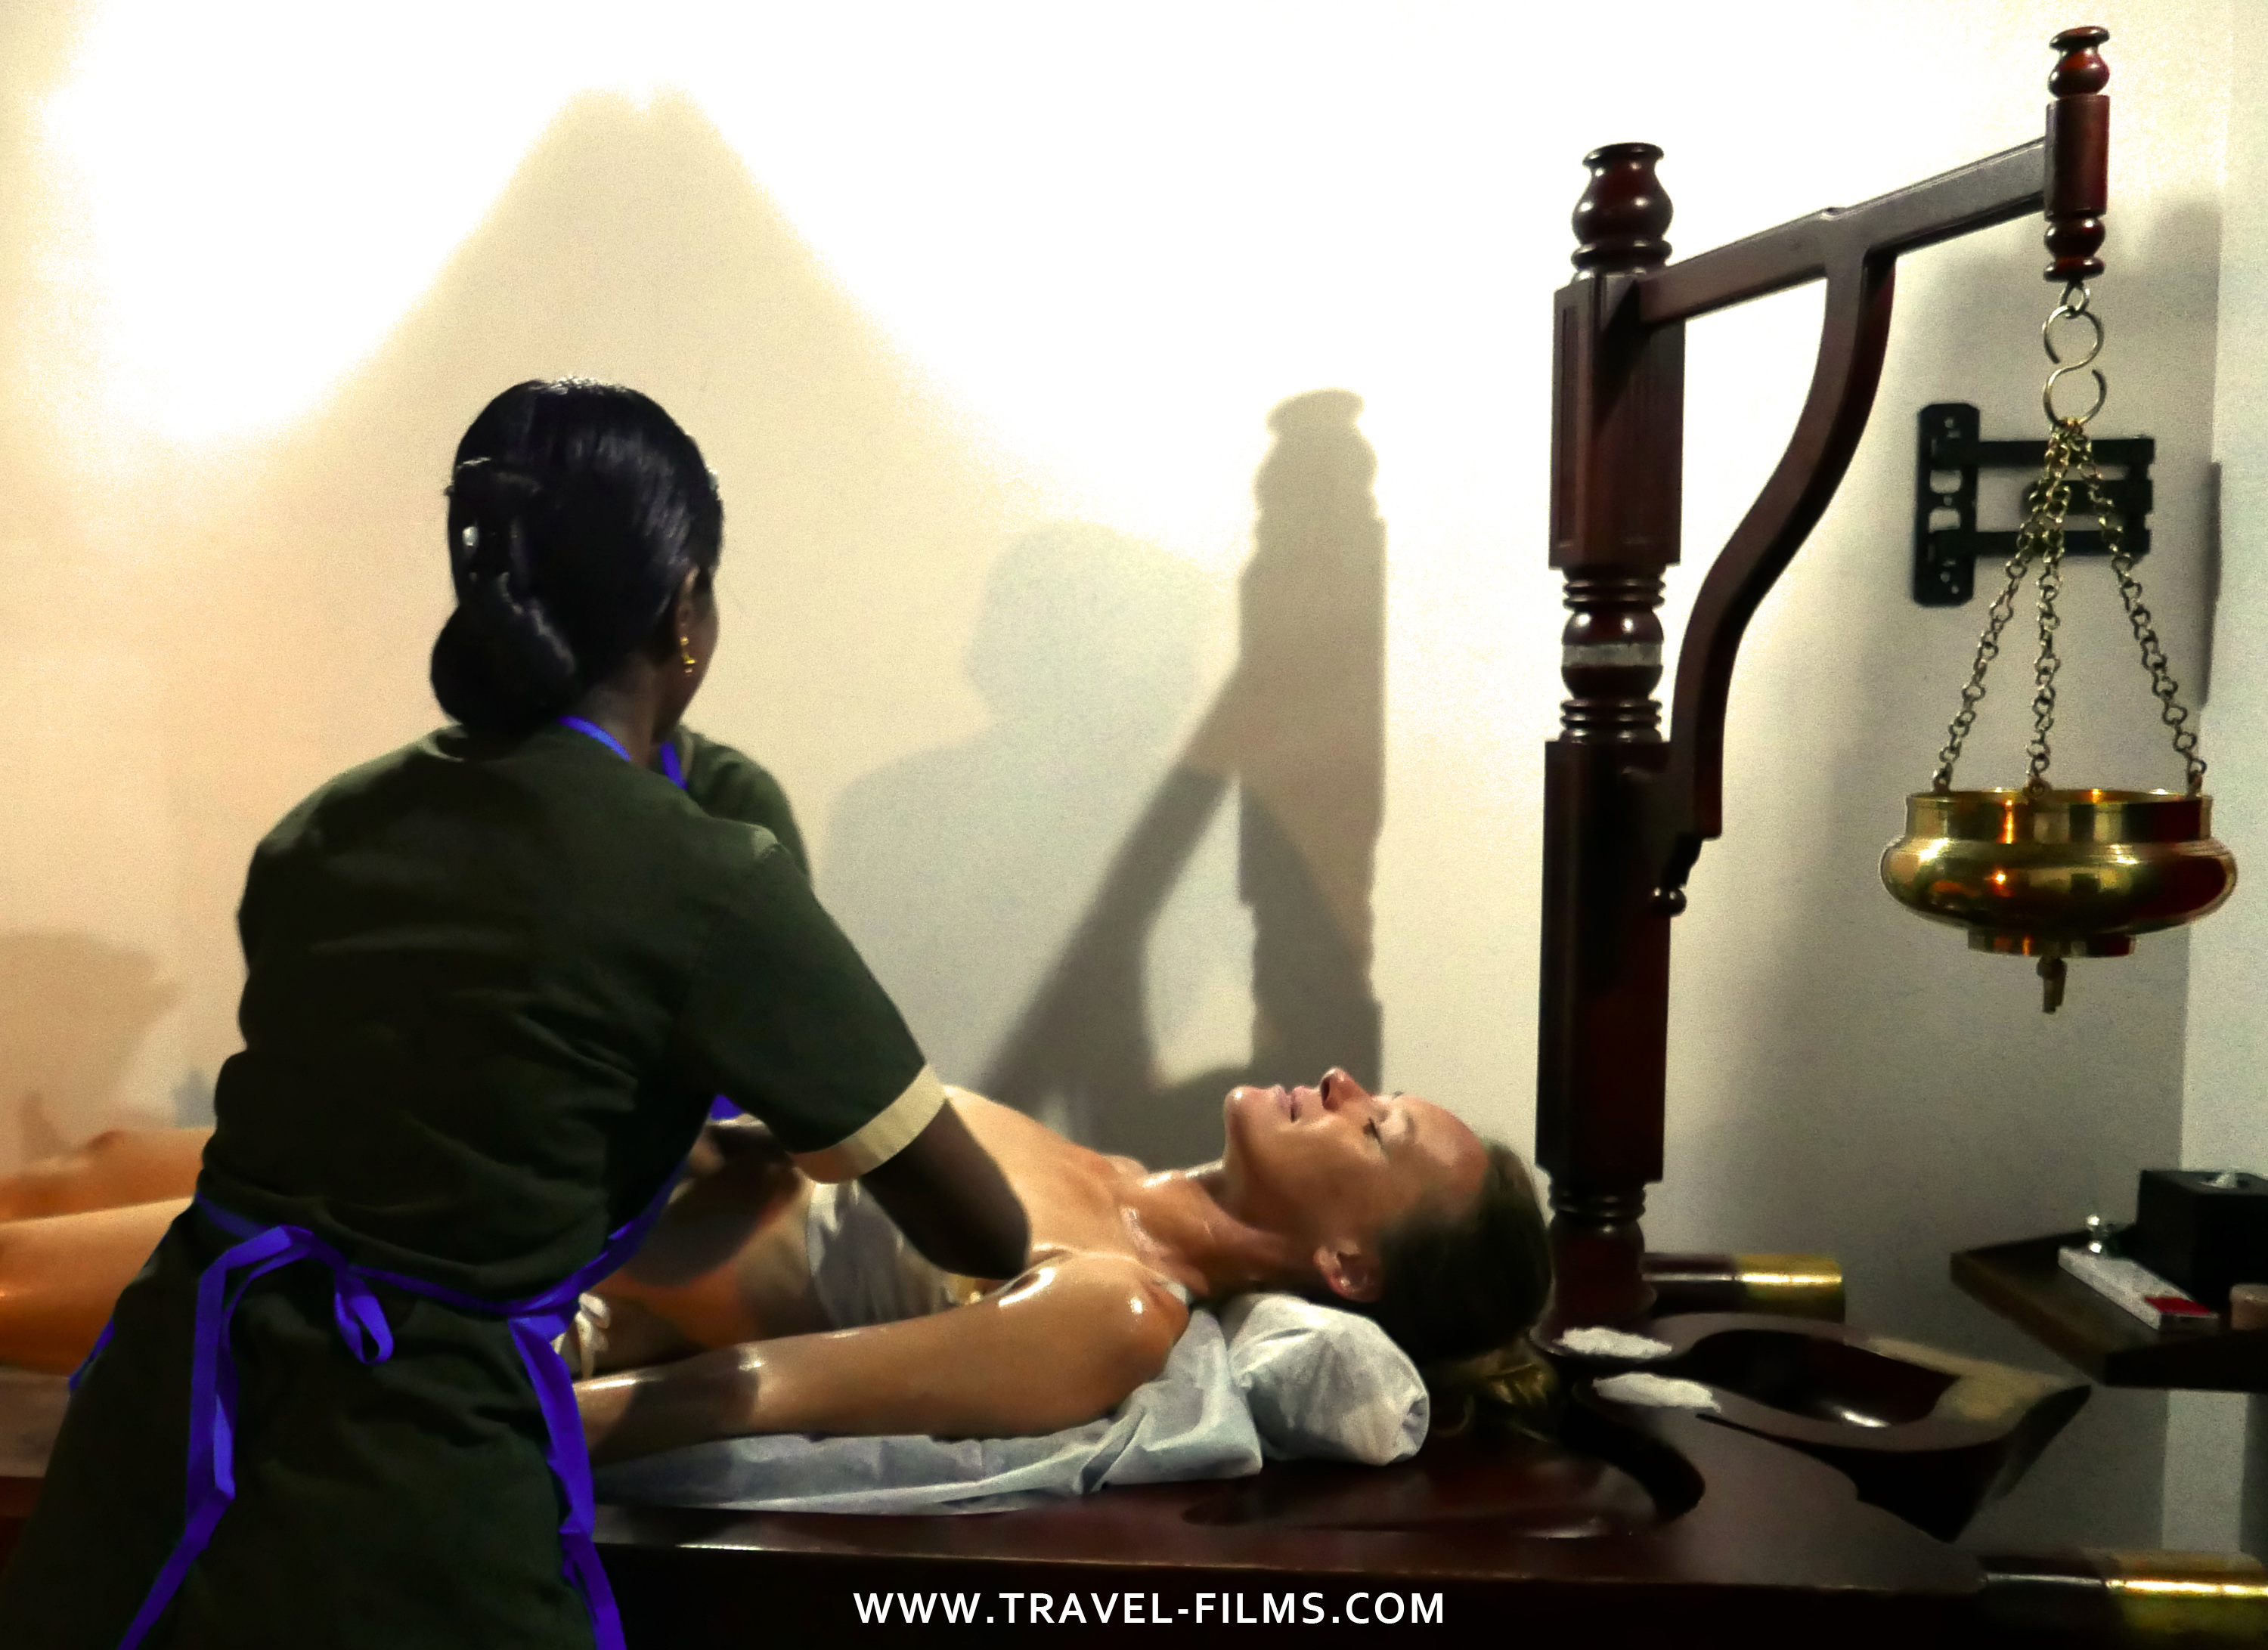 Sukhayus Ayurvedic treatments